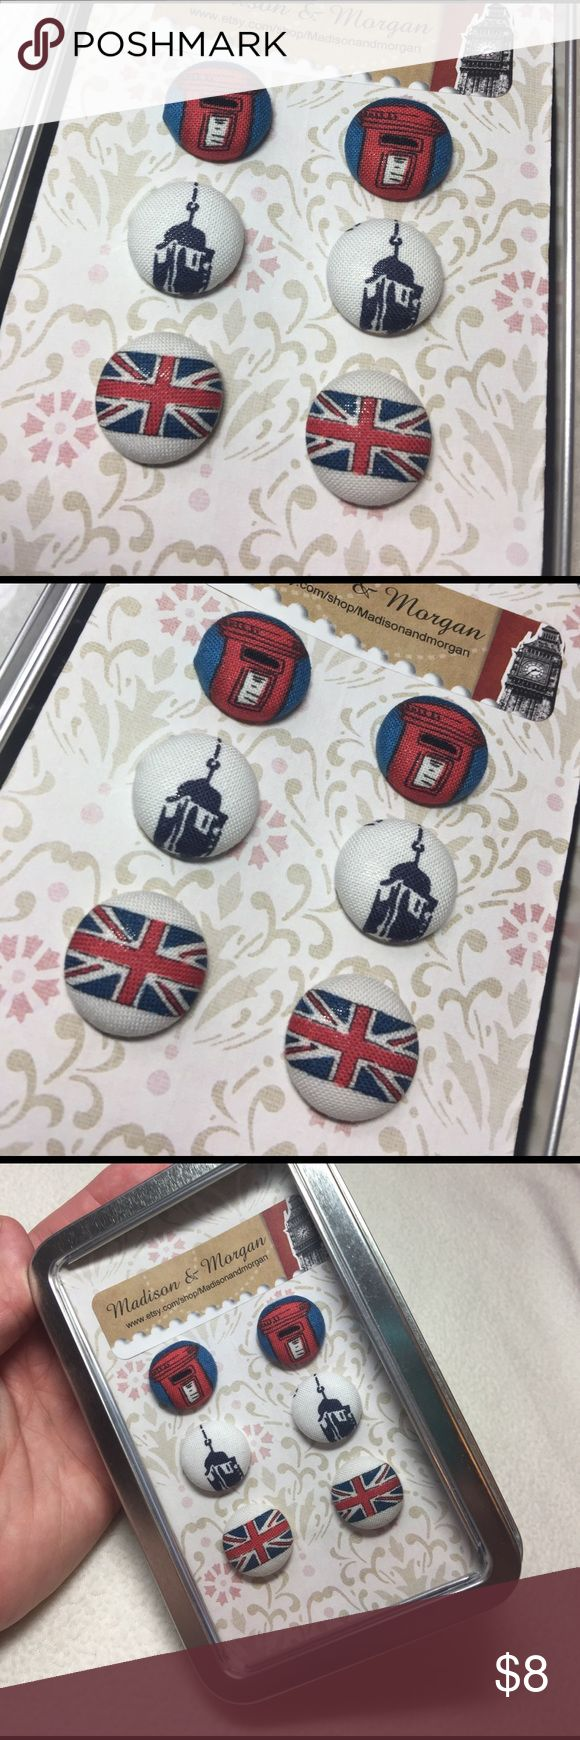 Handmade Designer Fabric London Earrings Beautiful handmade set of three pairs of fabric covered 'Button Betty' earrings handcrafted from designer fabrics. These earrings measure half inch in diameter and are made from surgical stainless steel backs and p